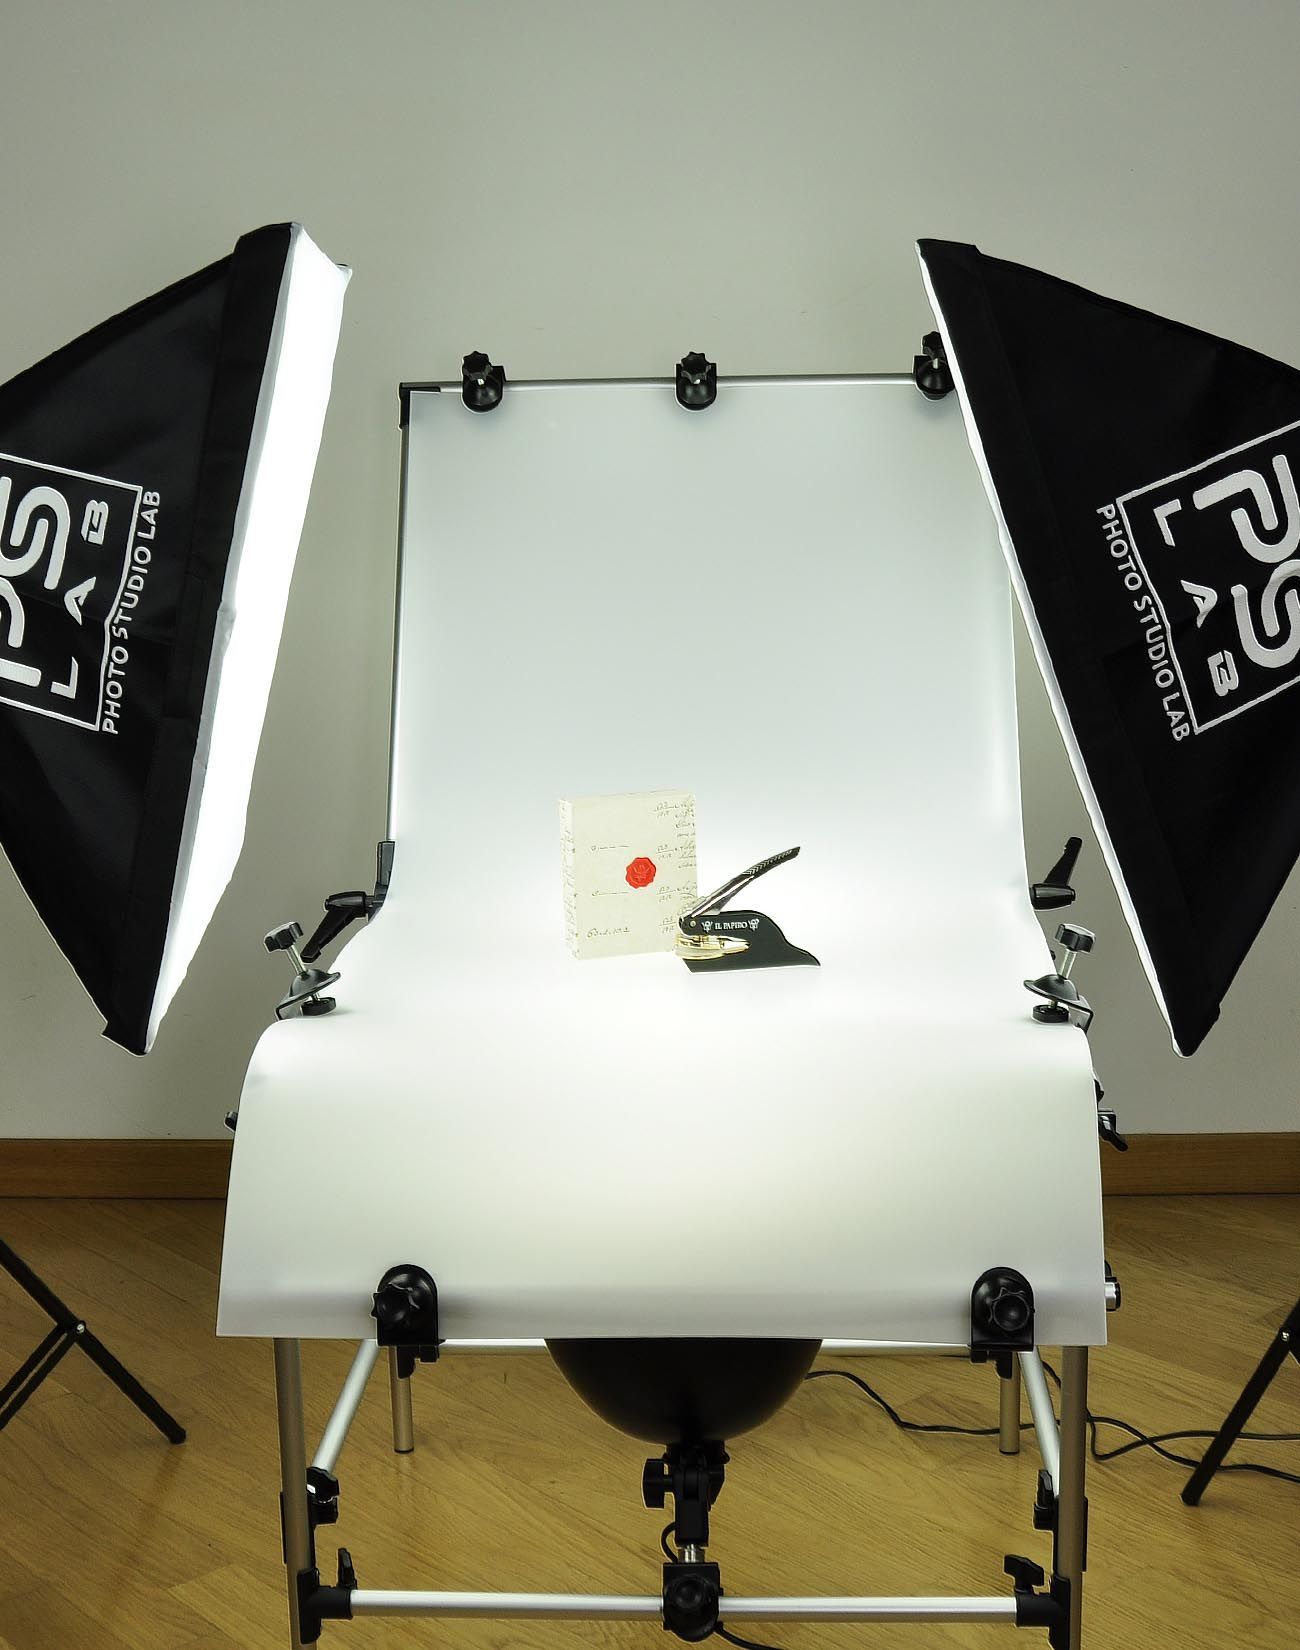 Studio Set Up To Photograph Objects Mini Photo Studio Photo Studio Table Top Photography